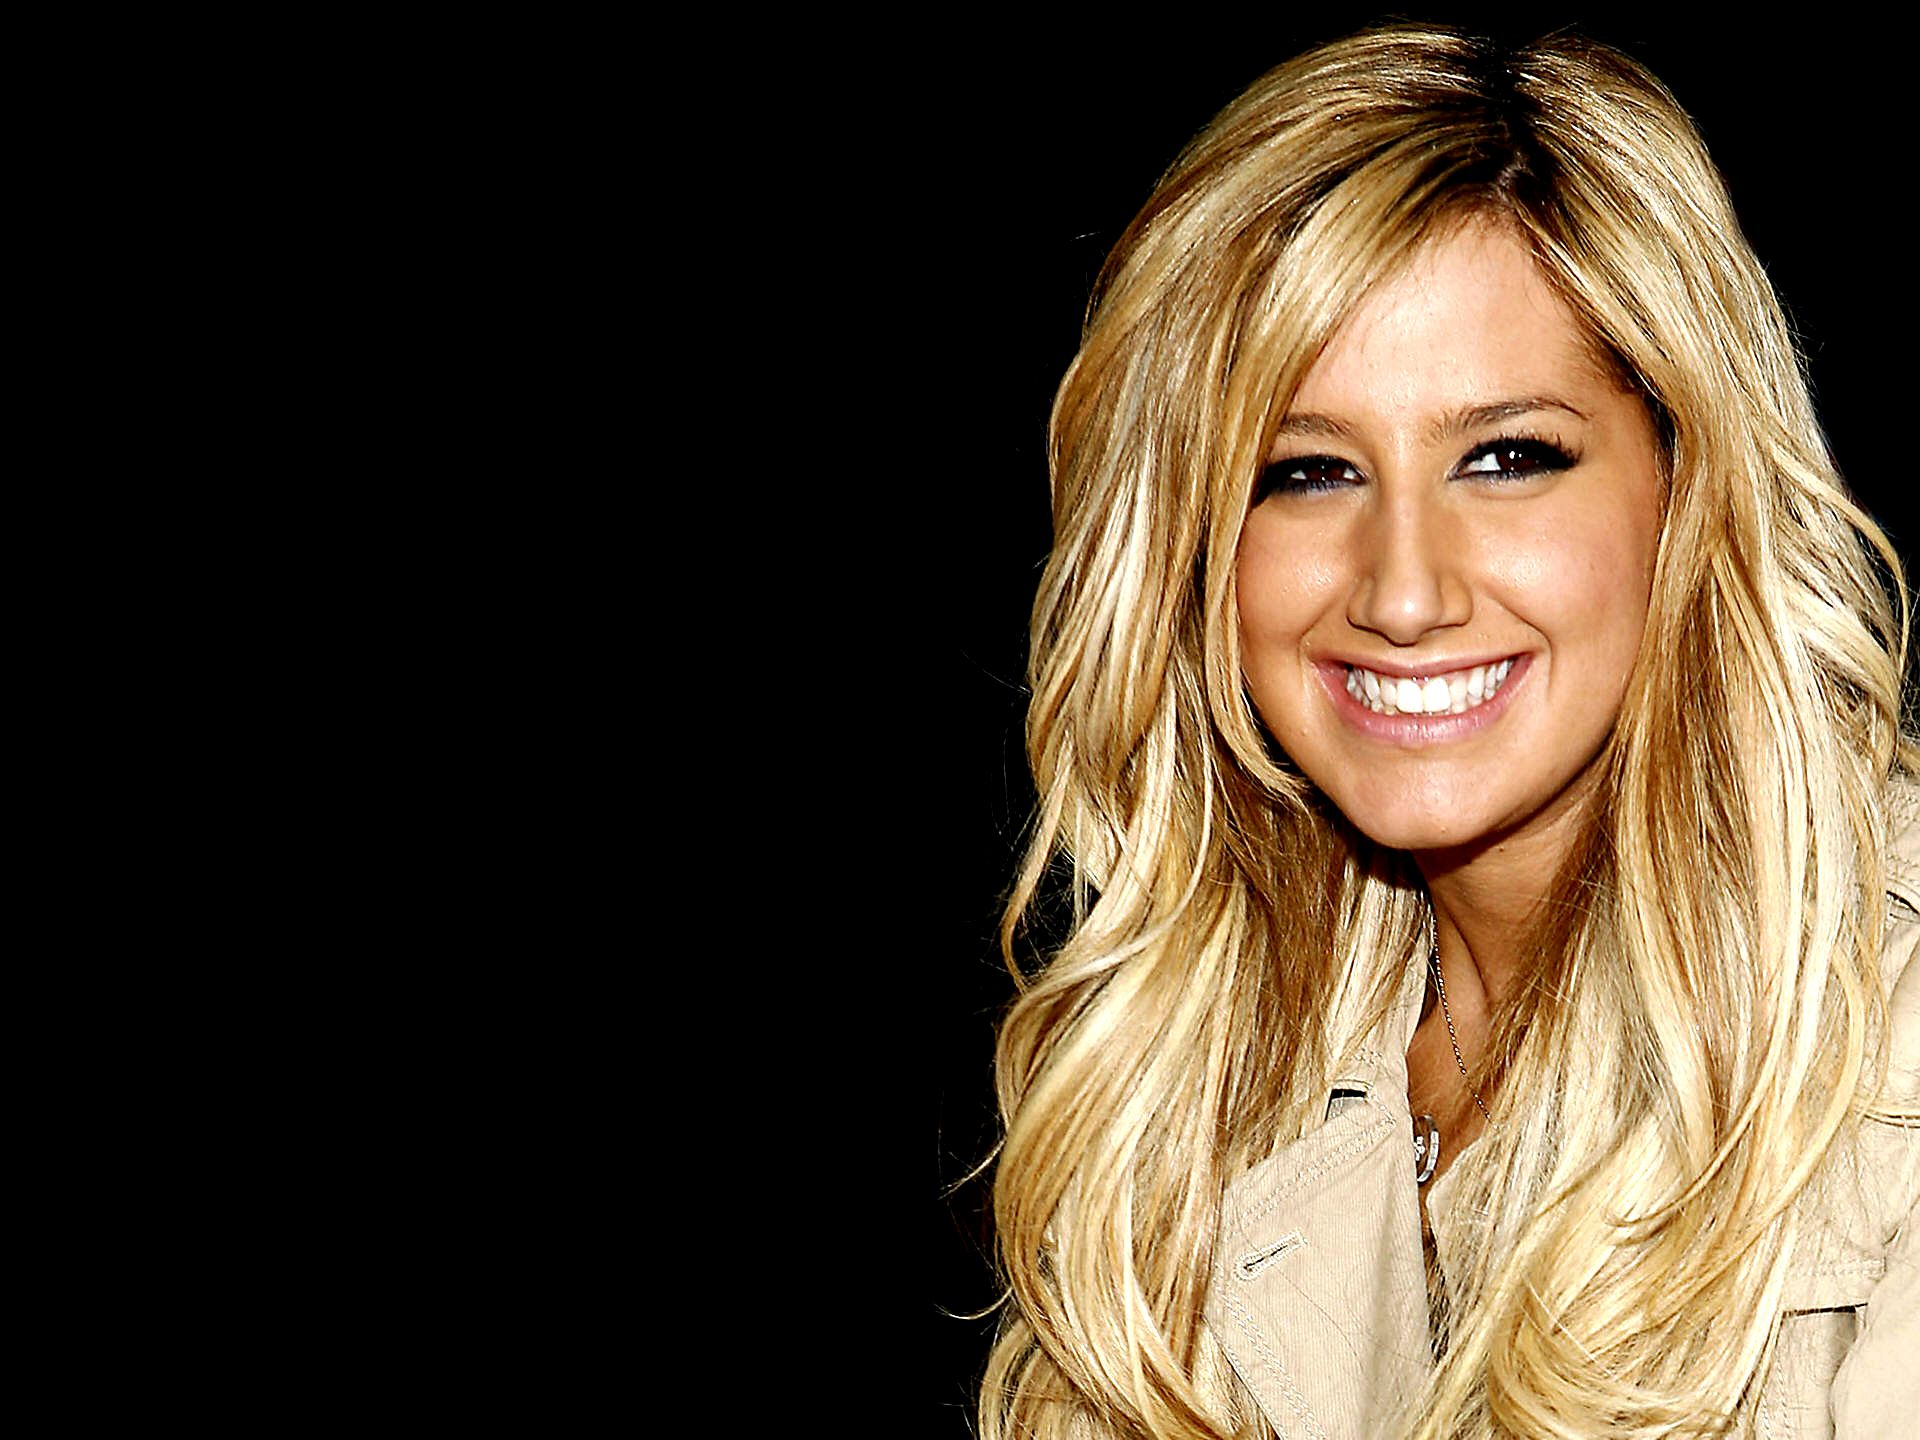 Ashley Tisdale Res: 1920x1440 / Size:310kb. Views: 81272